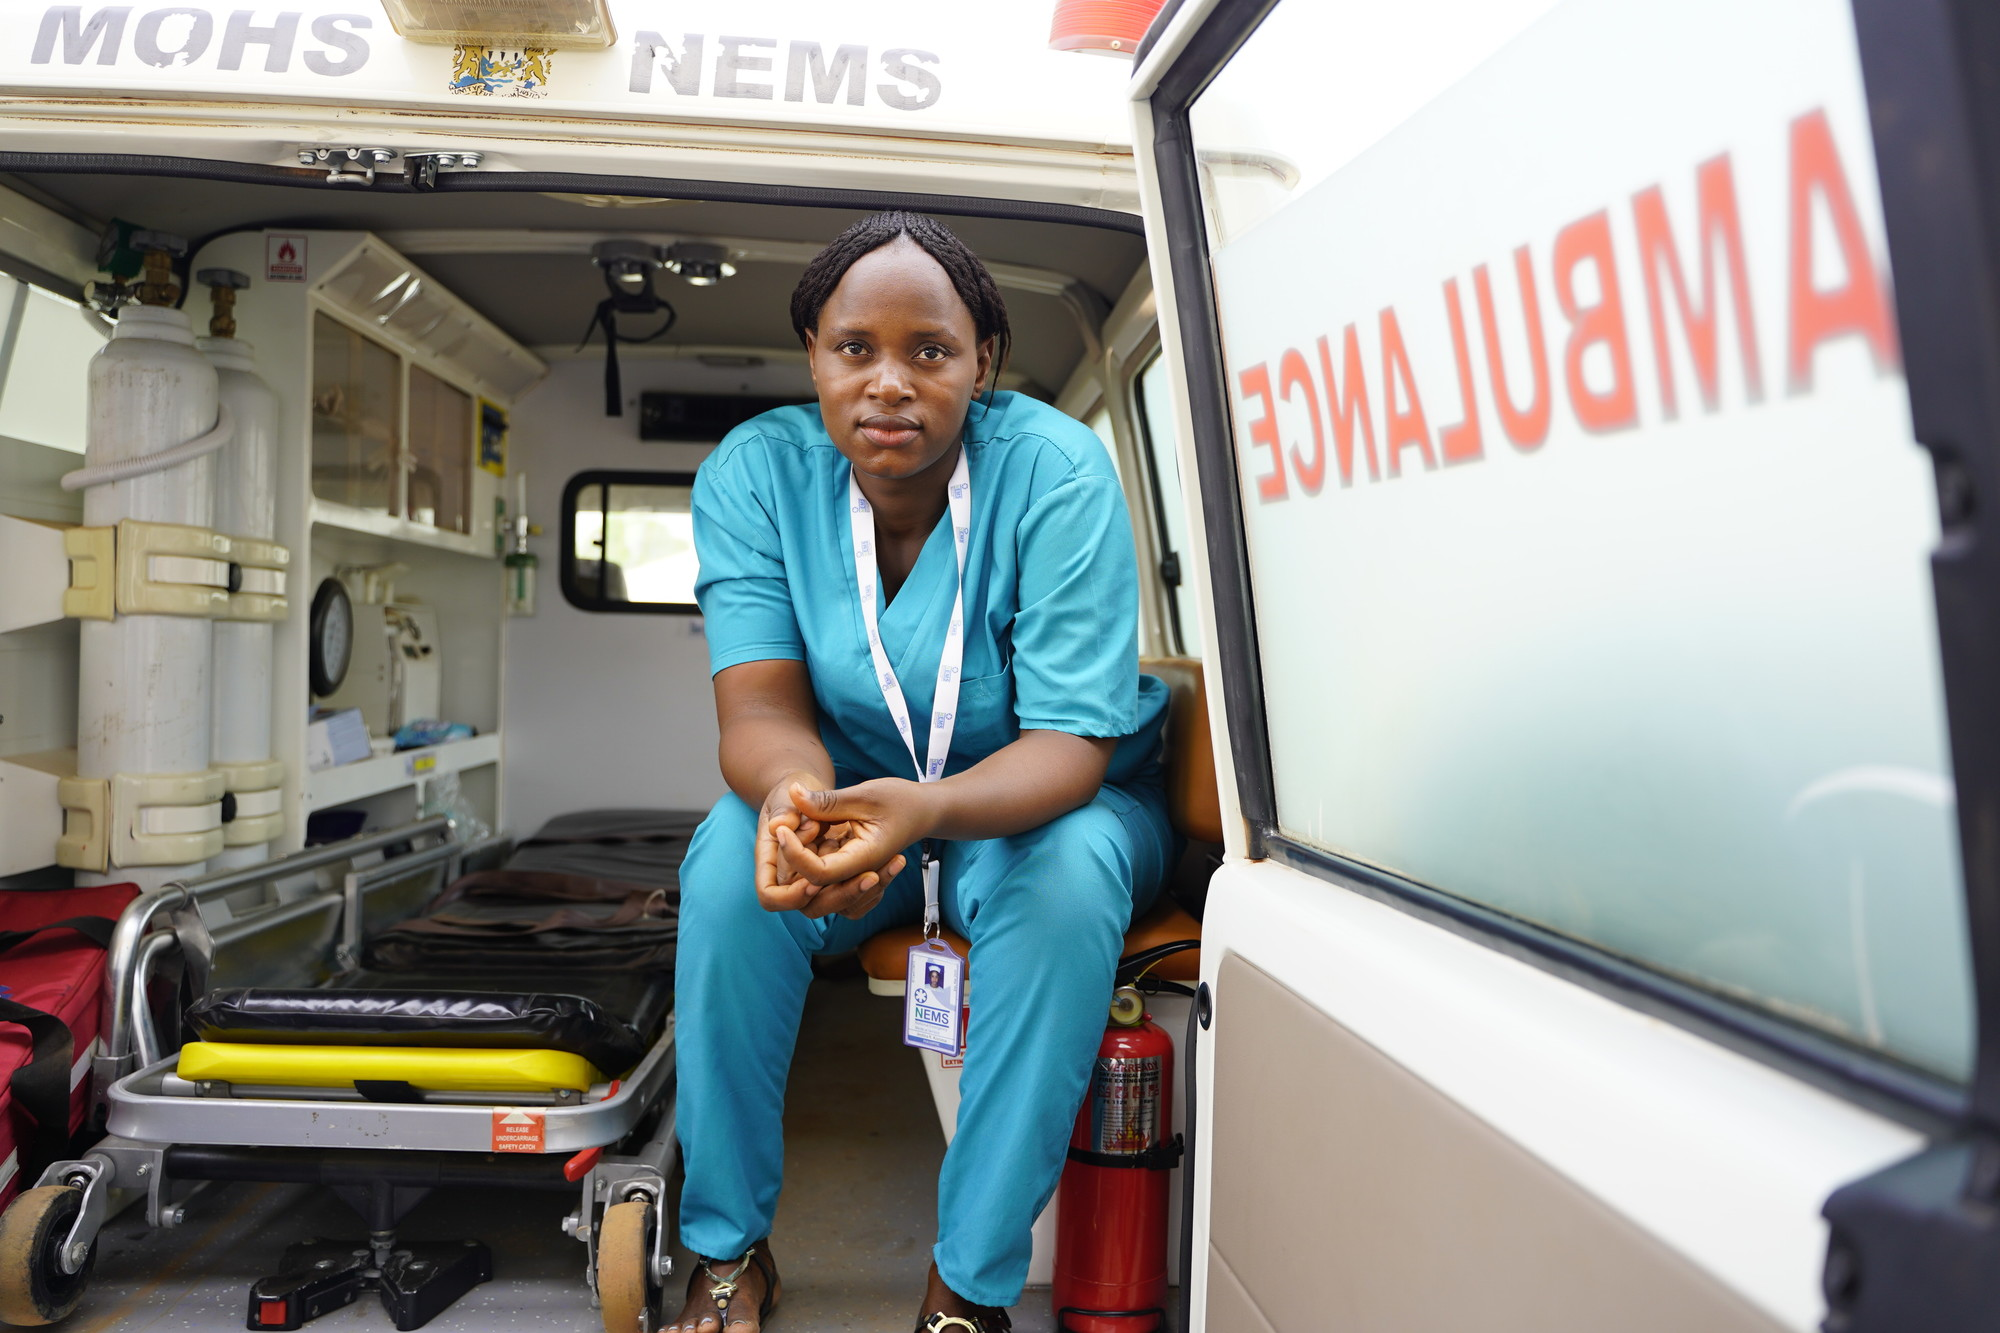 A woman medical professional sits inside the back of an ambulance with the rear door open.